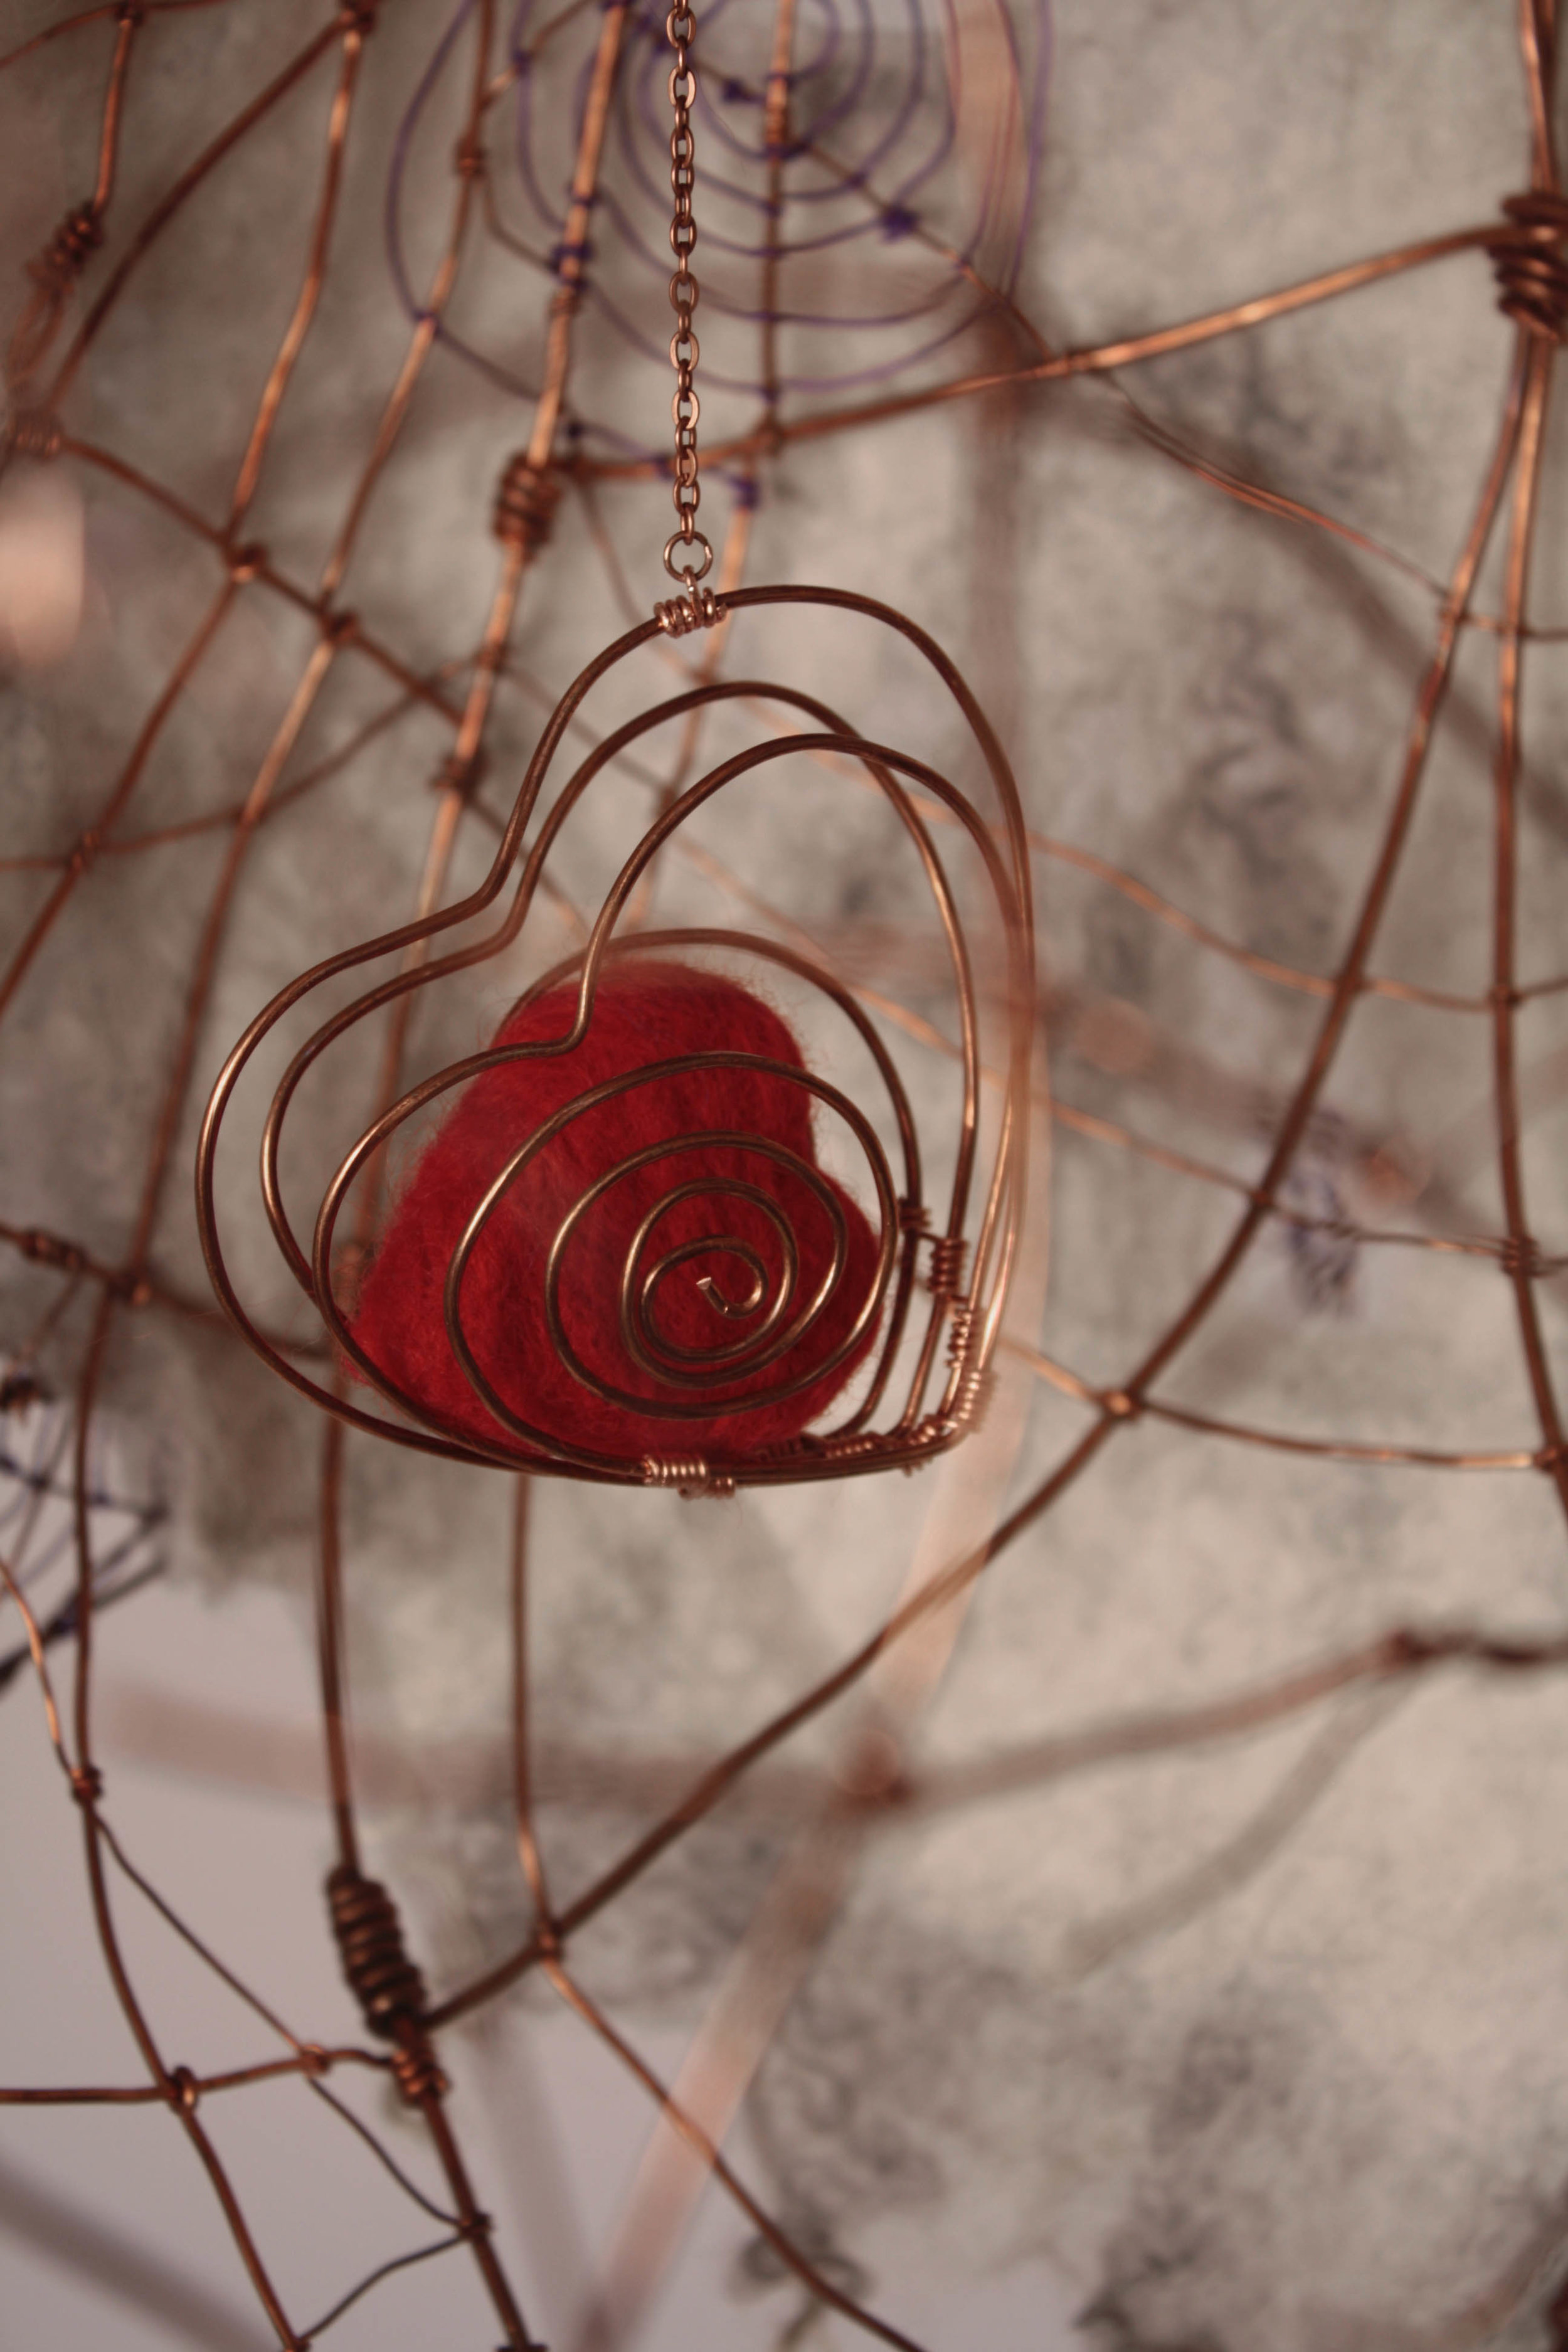 3D felted red heart inside a copper wire heart-shaped cage dangles inside